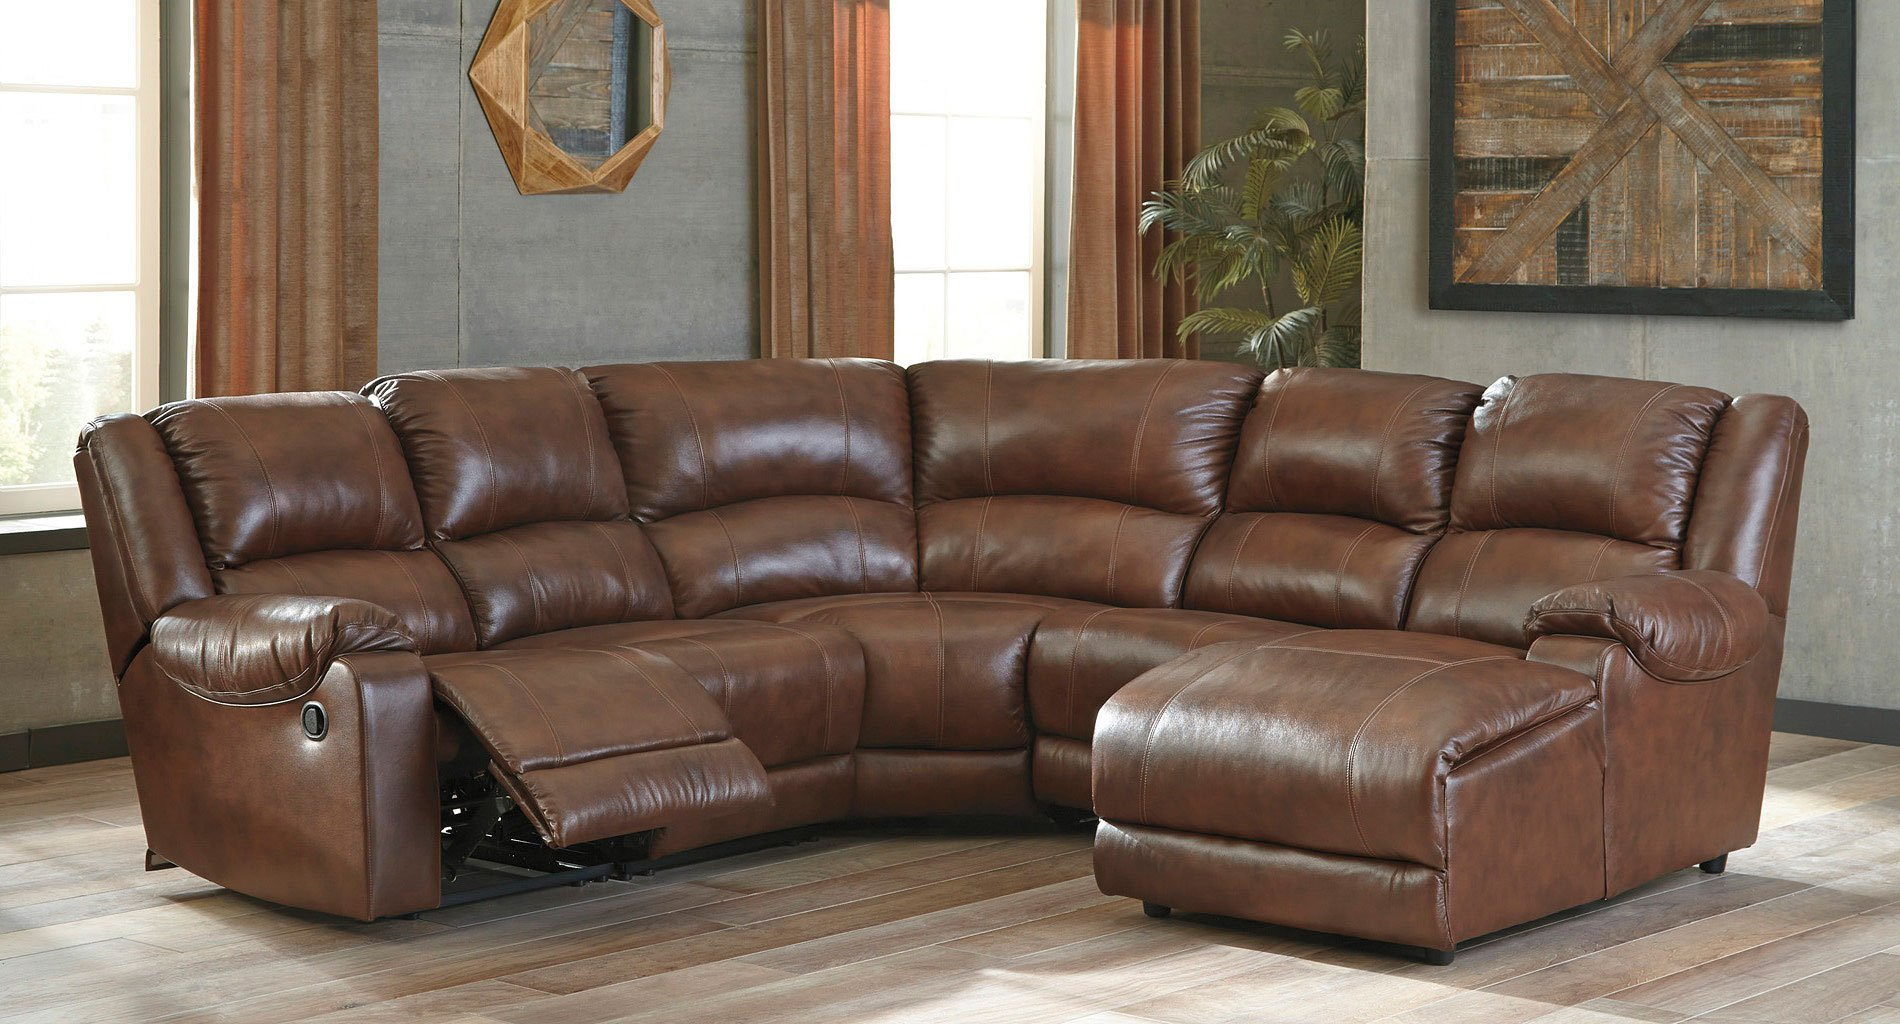 Billwedge Canyon Right Chaise Sectional Sectionals Living Room Furniture Living Room